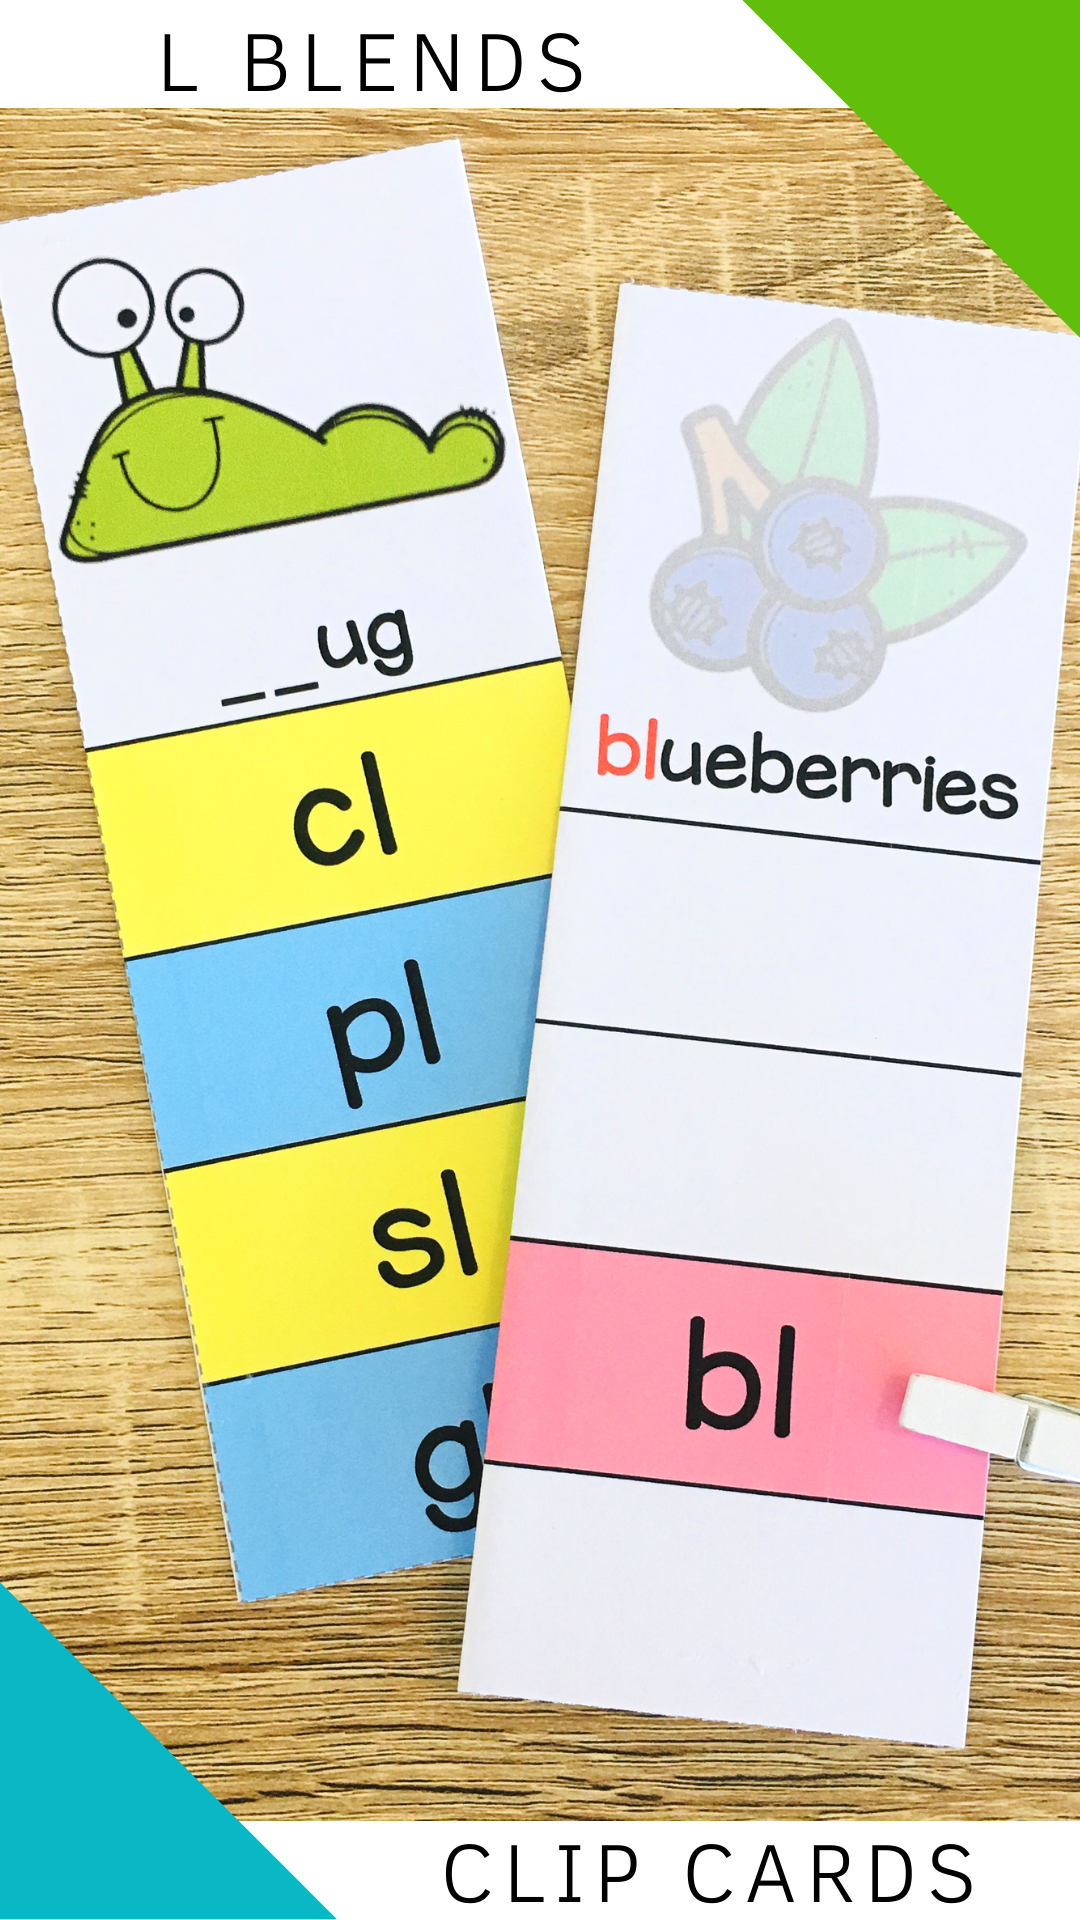 Consonant Blends Clip Cards Poster Worksheet L Blends